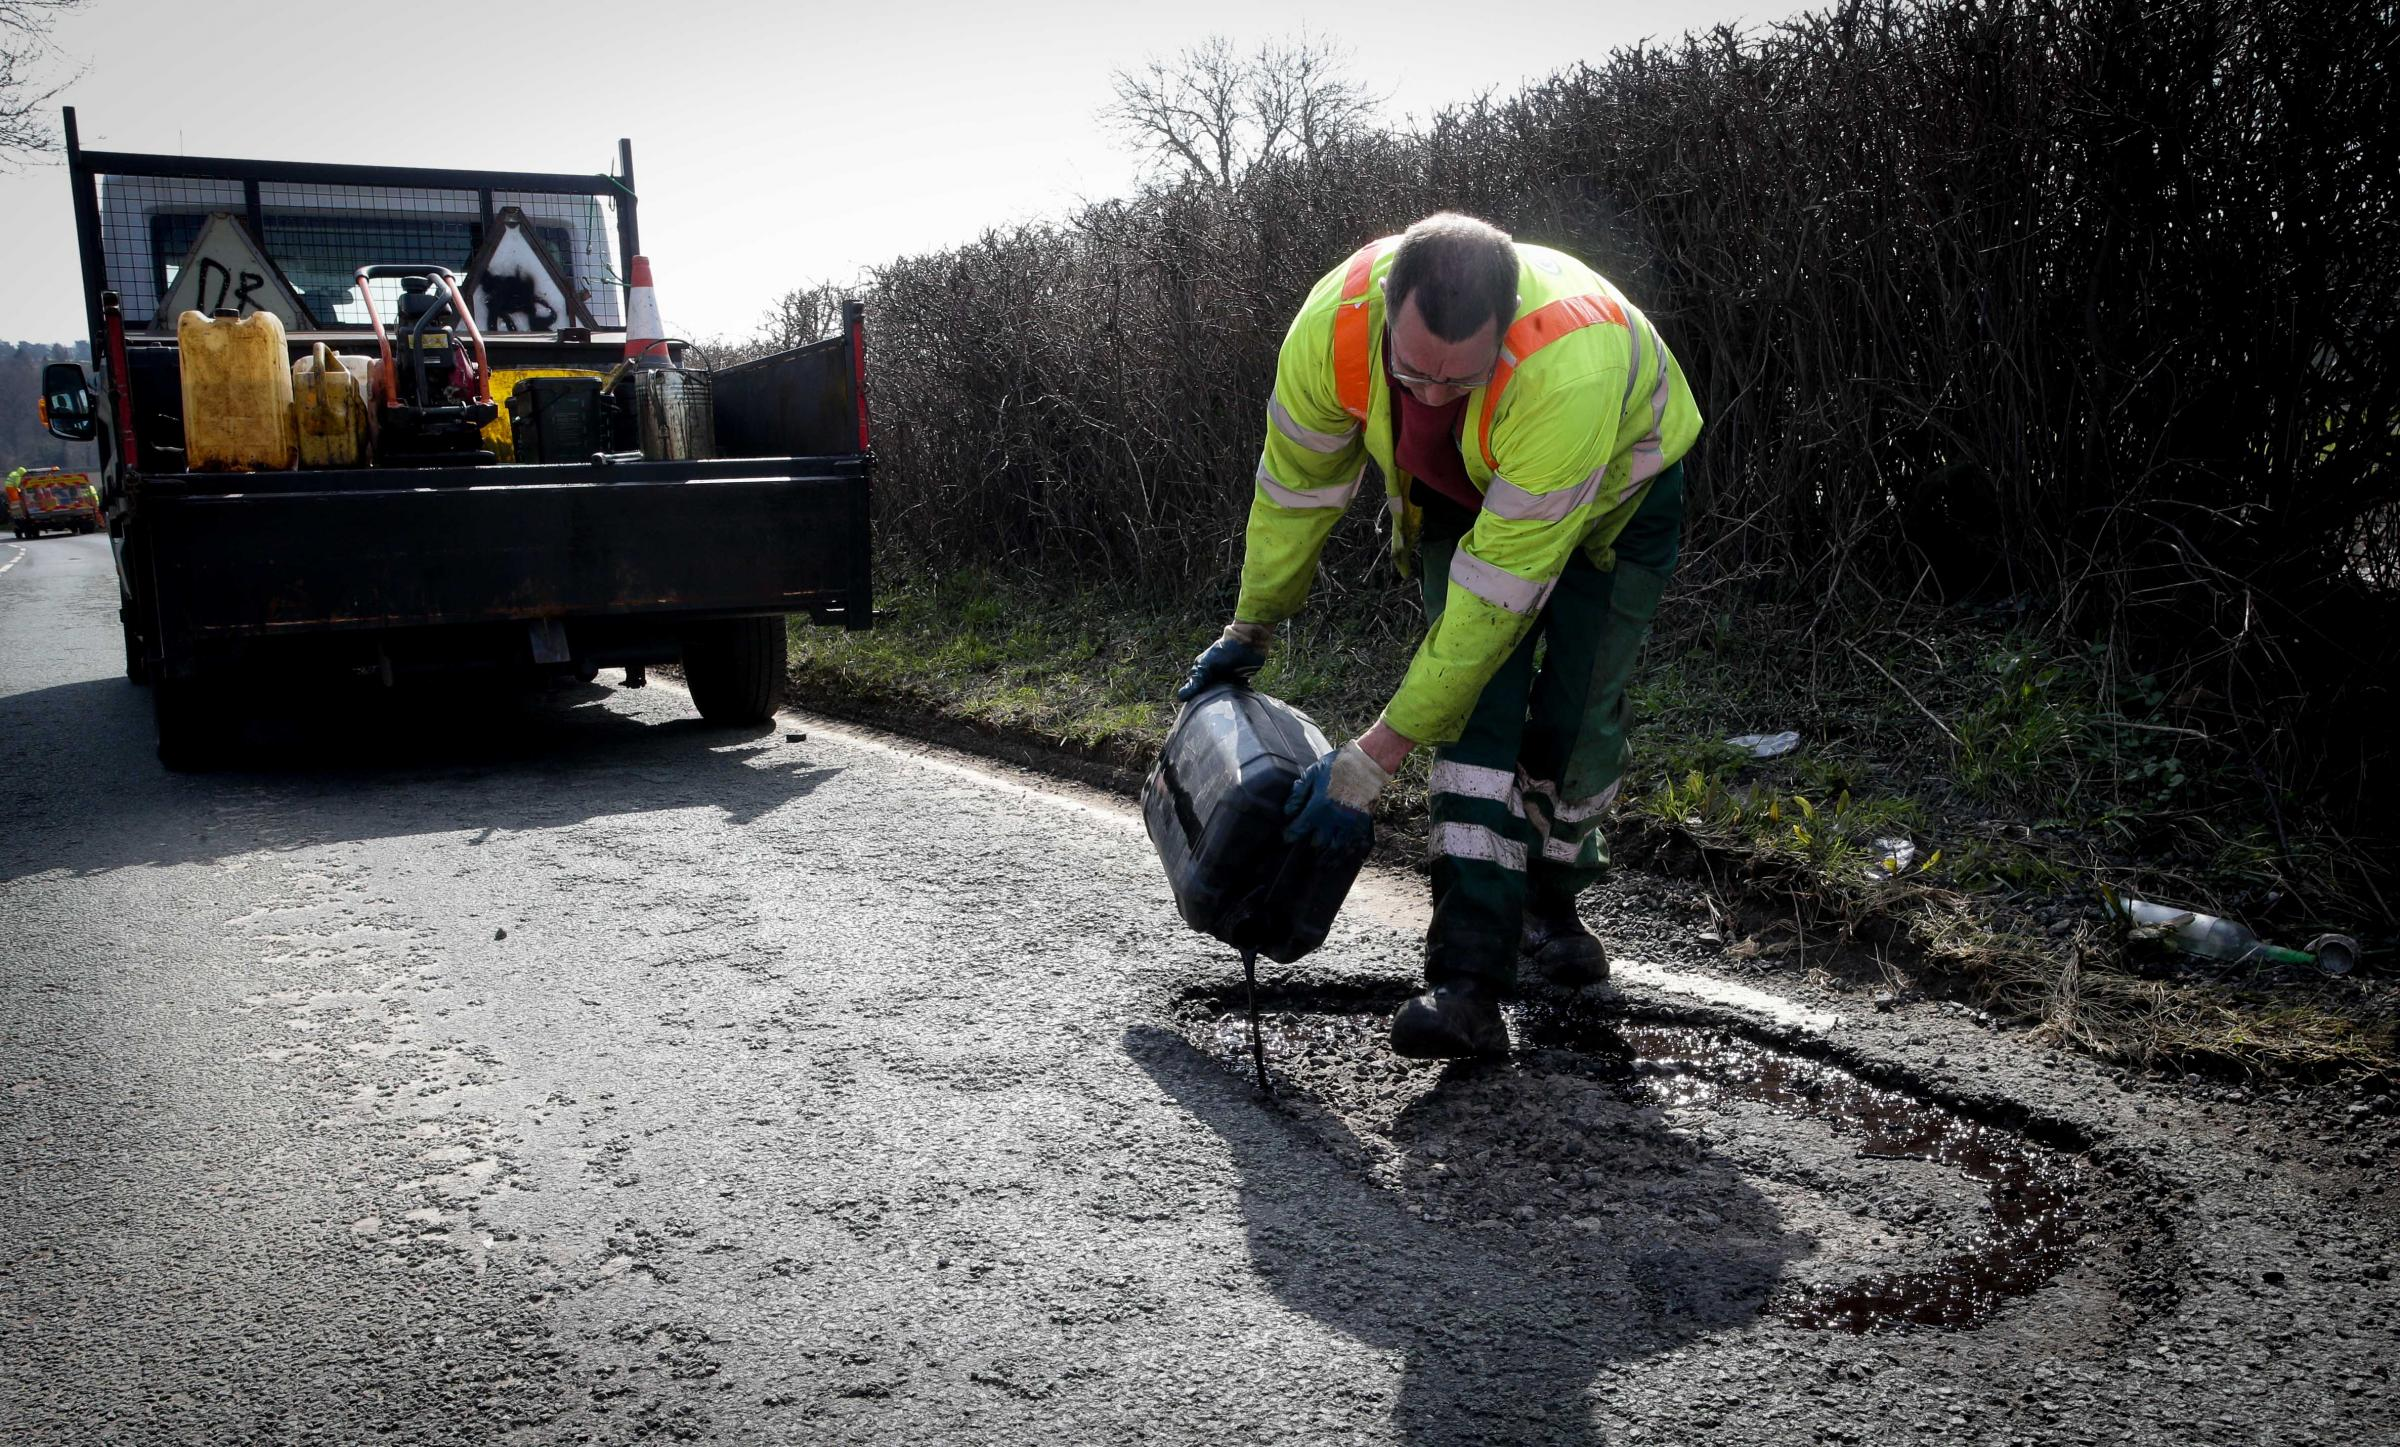 Poor weather conditions over the winter has made the pothole situation worse than normal